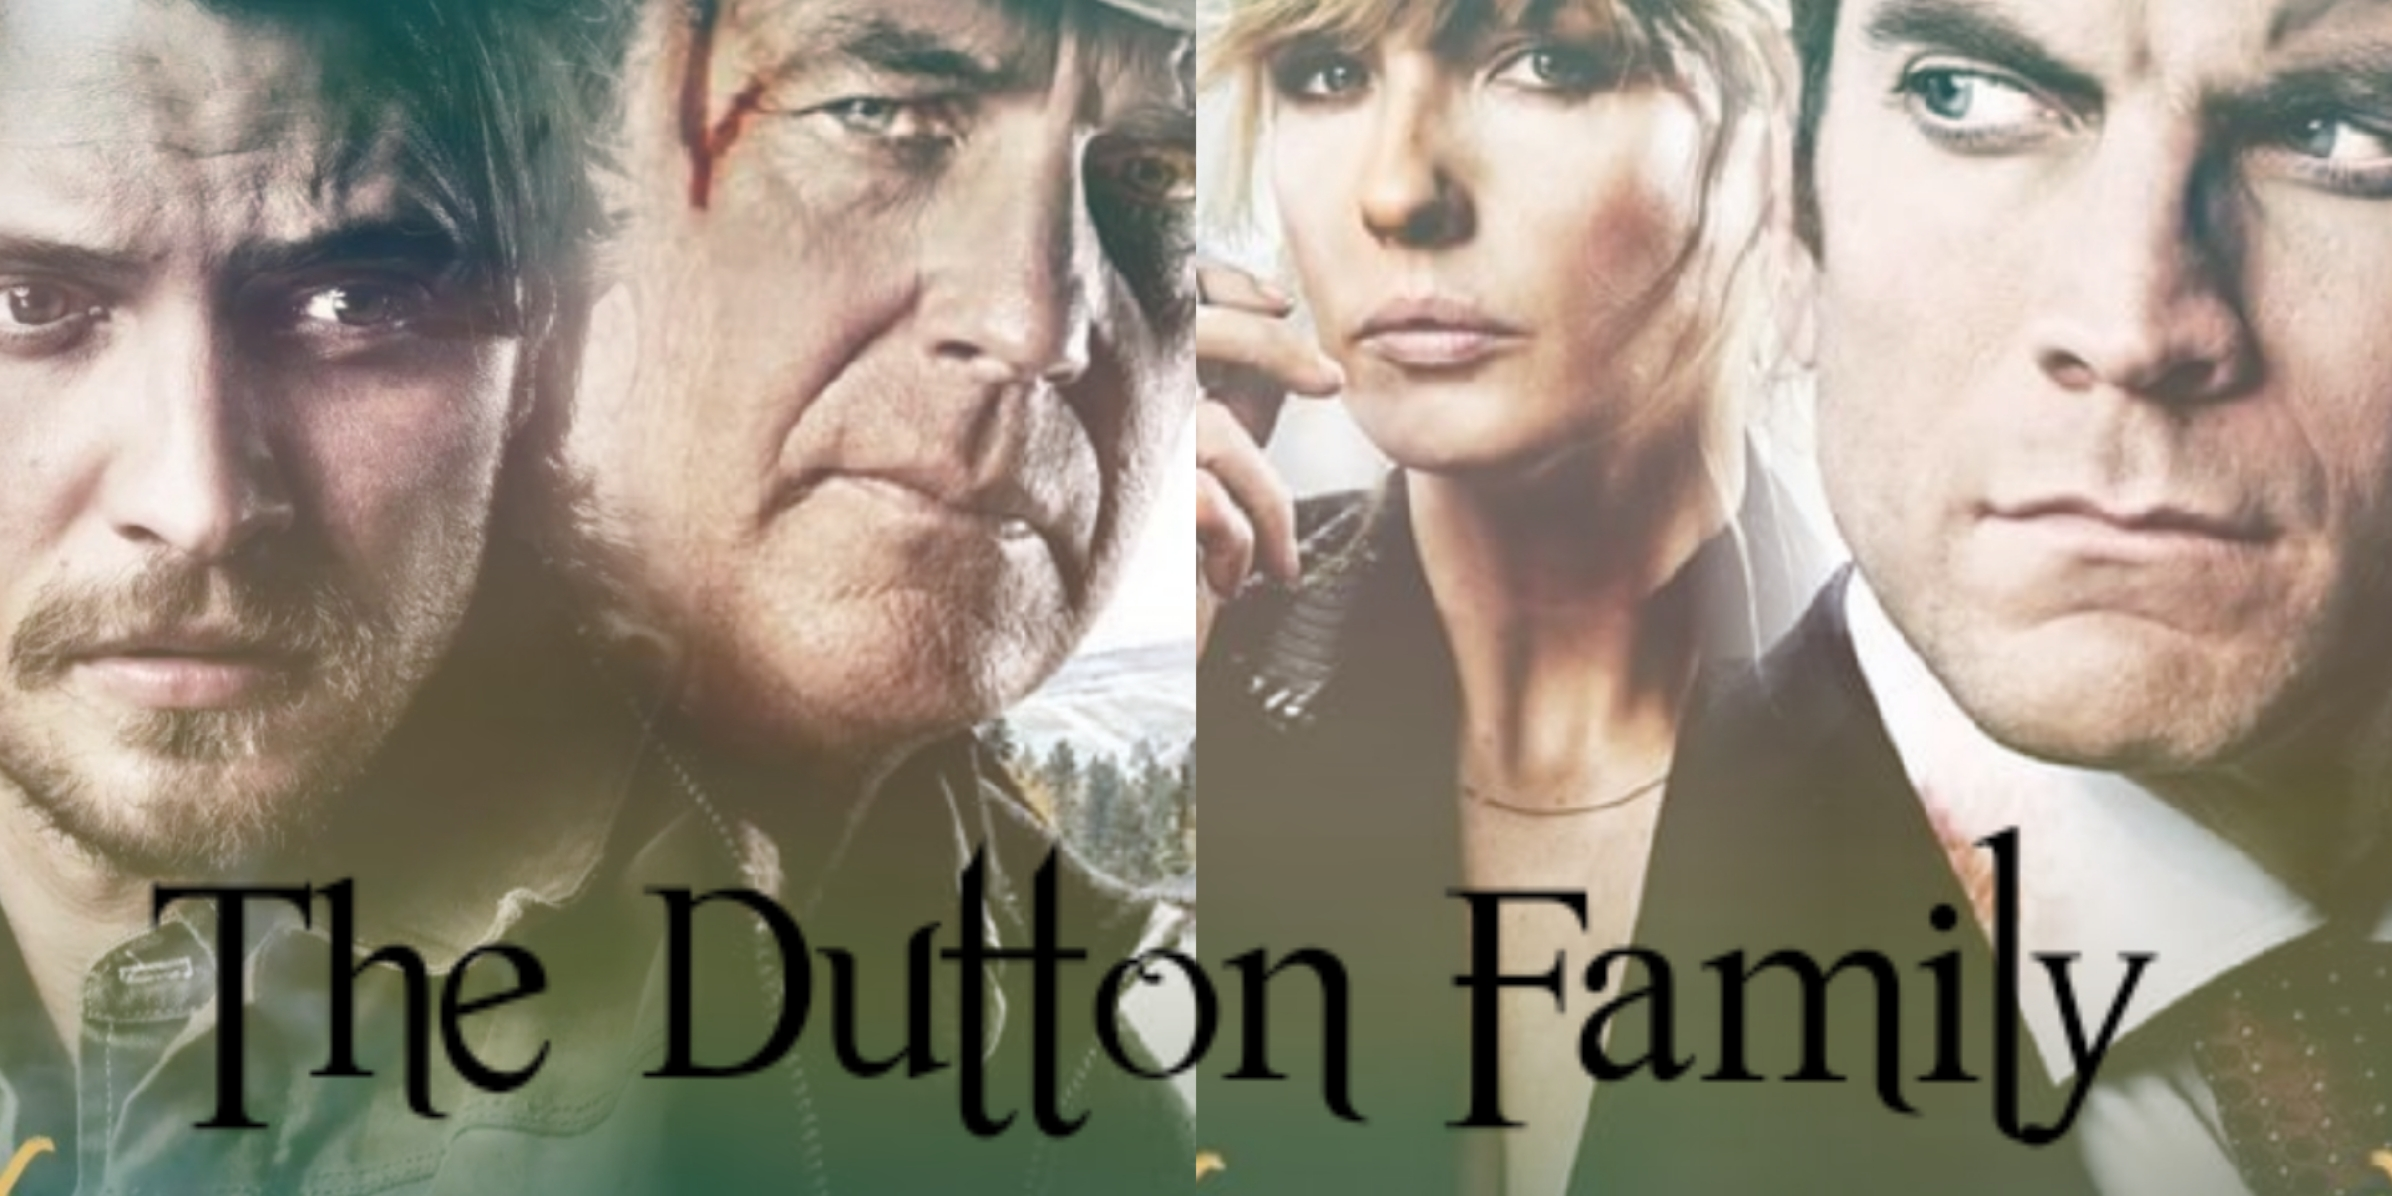 The Dutton Family